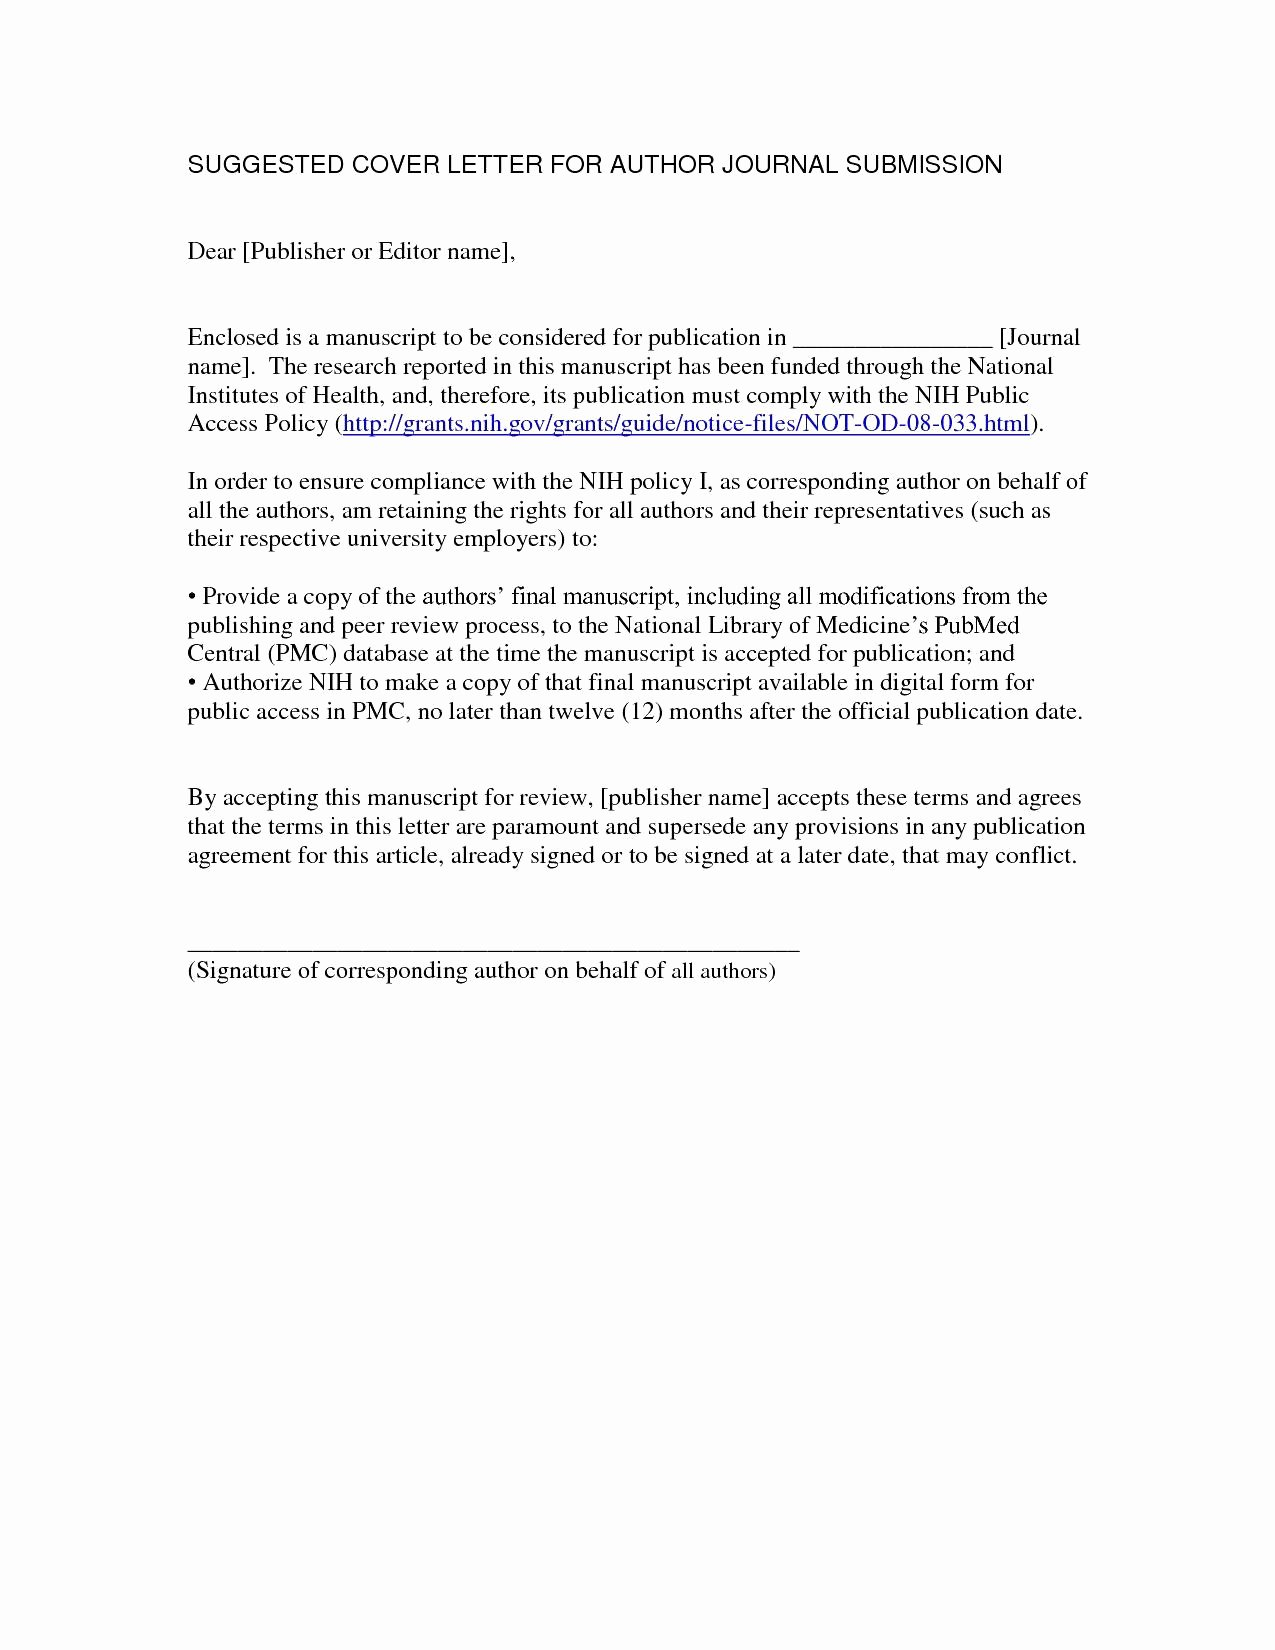 Snow Plow Contract Template Awesome Snow Plow Contract Template